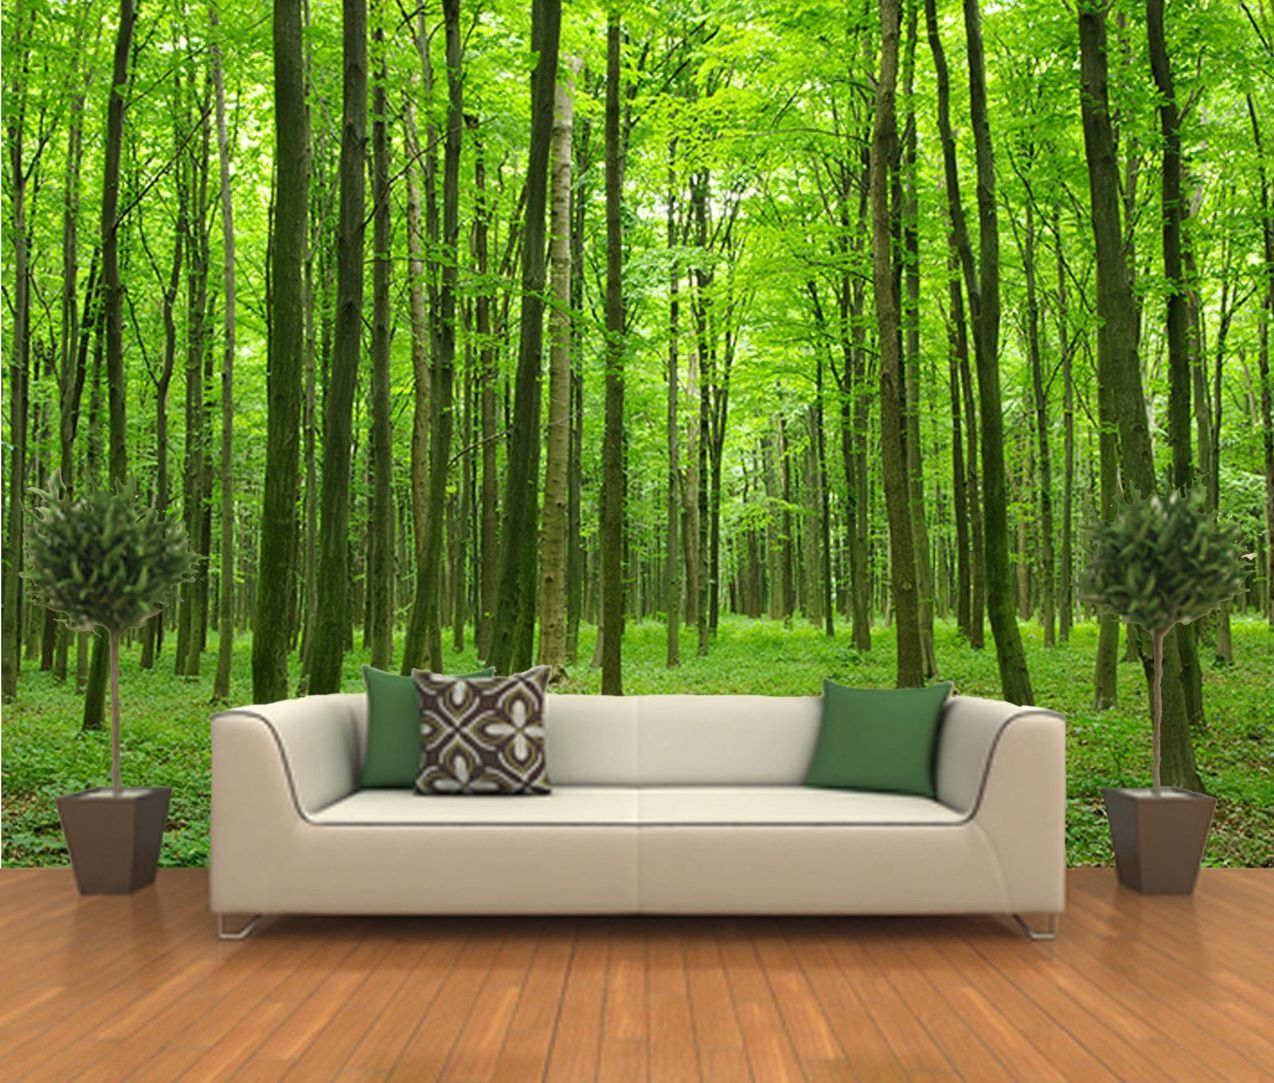 peel and stick photo wall mural decor wallpapers forest. Black Bedroom Furniture Sets. Home Design Ideas